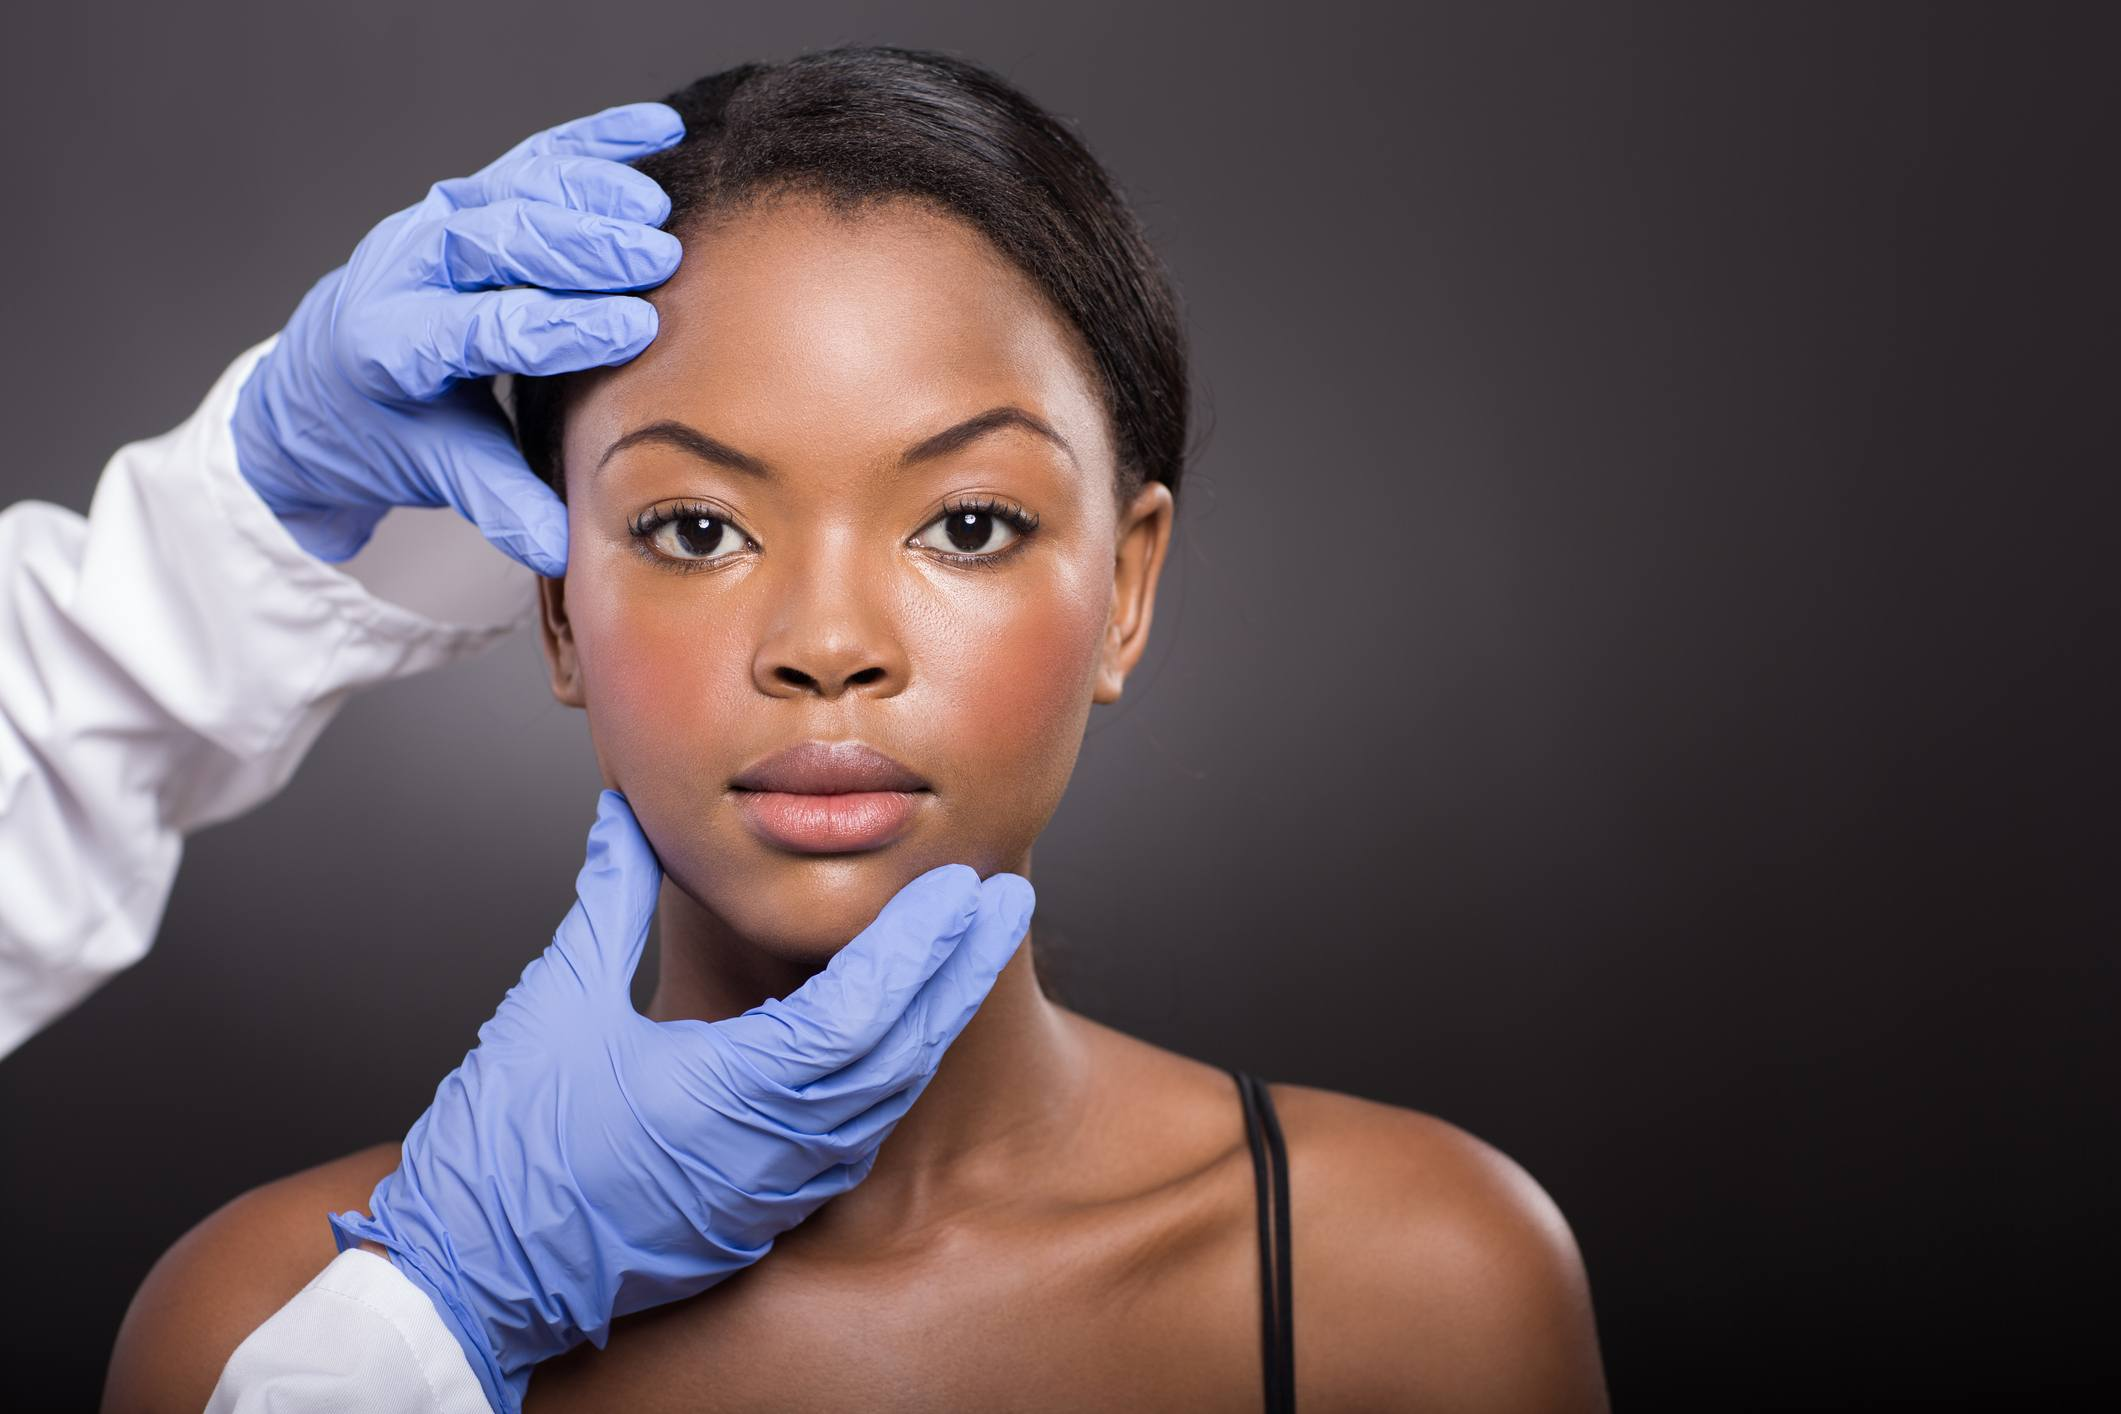 dermatologist checking african woman face skin